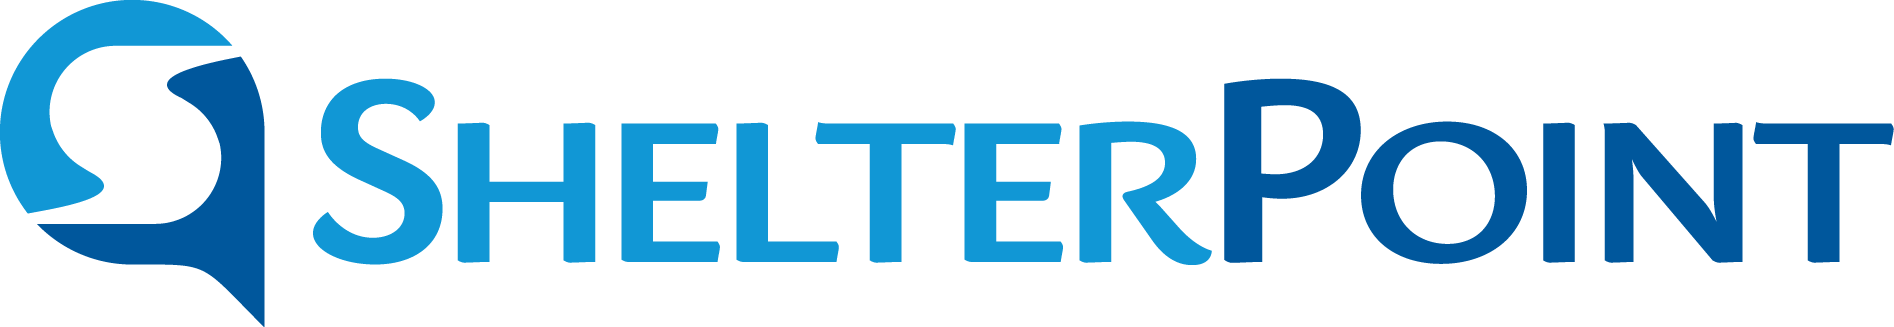 ShelterPoint-Logo.png